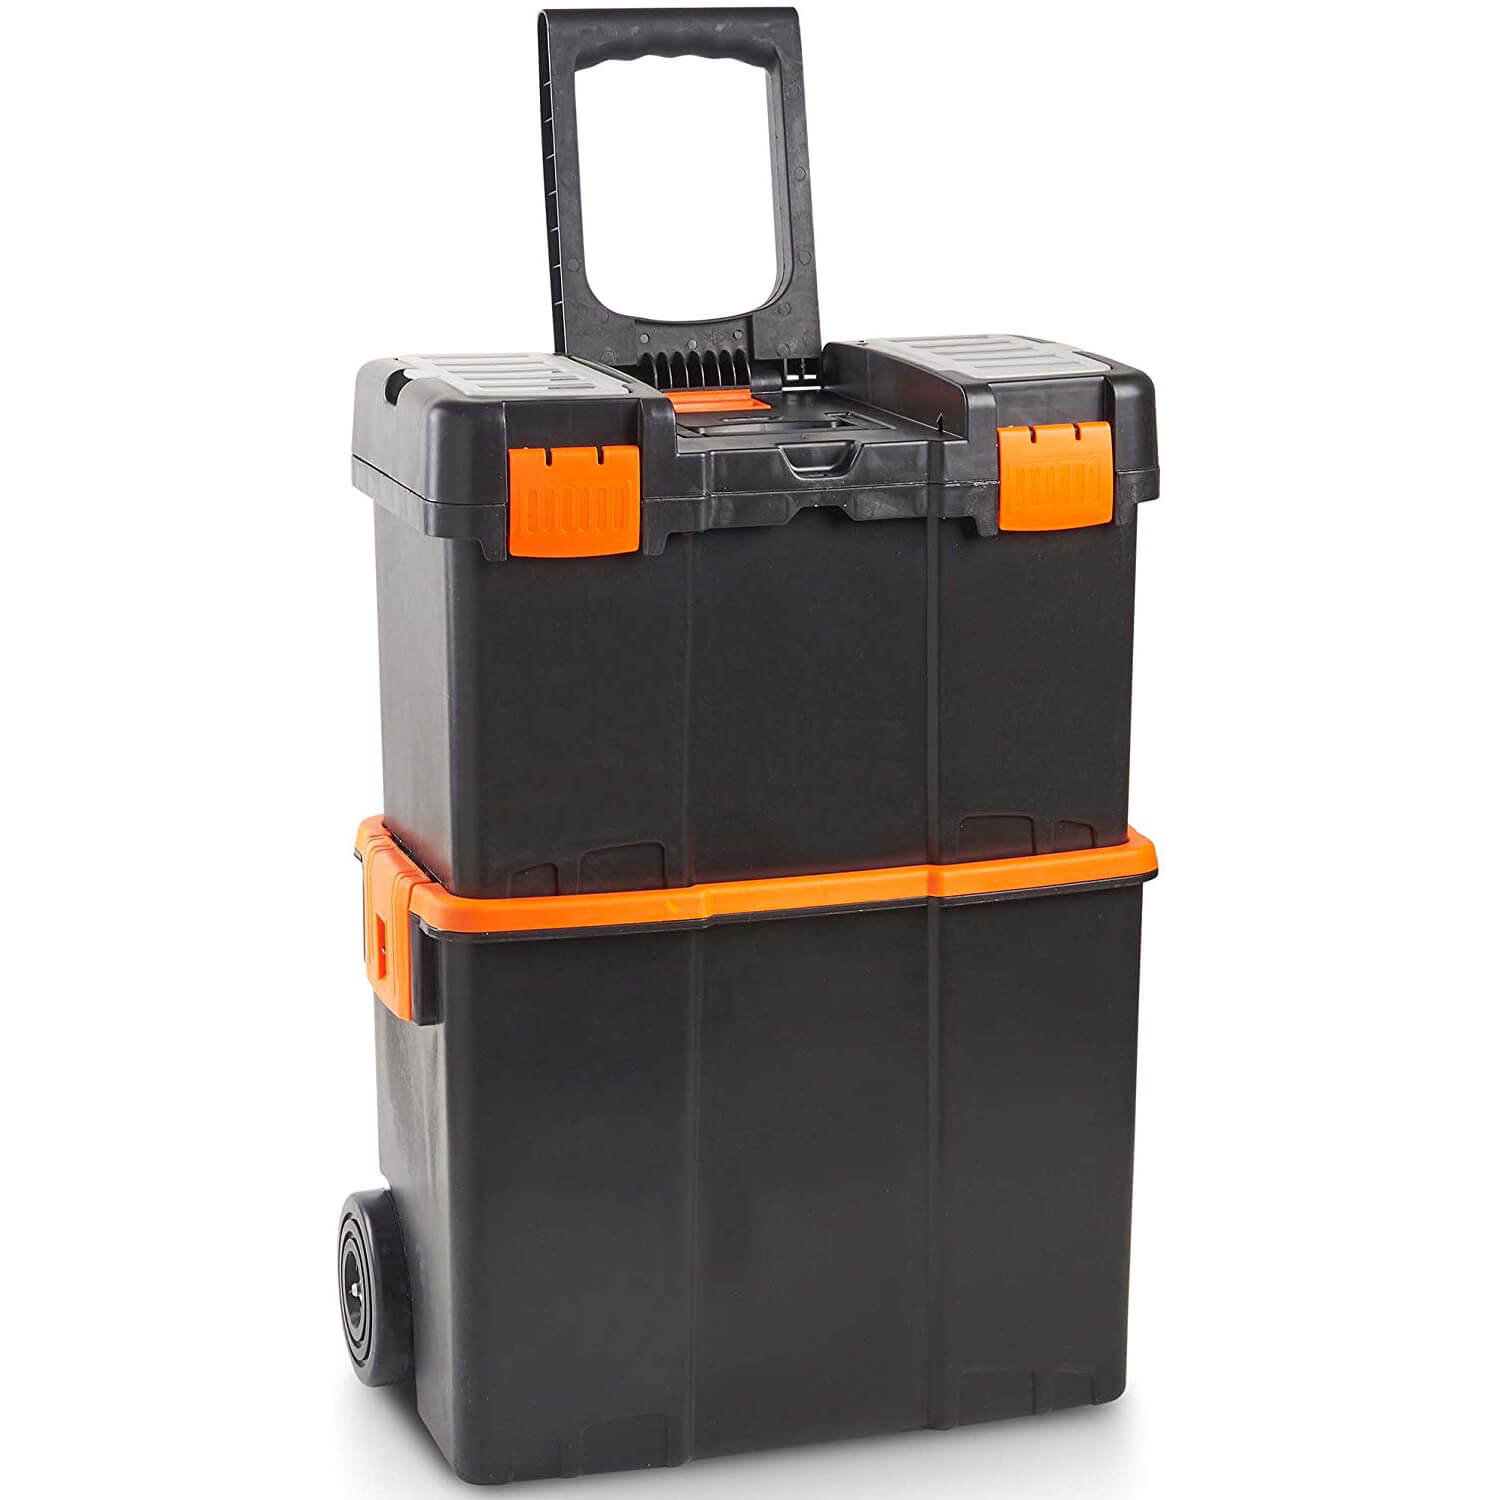 VonHaus Roller Tool Box with Stackable Boxes